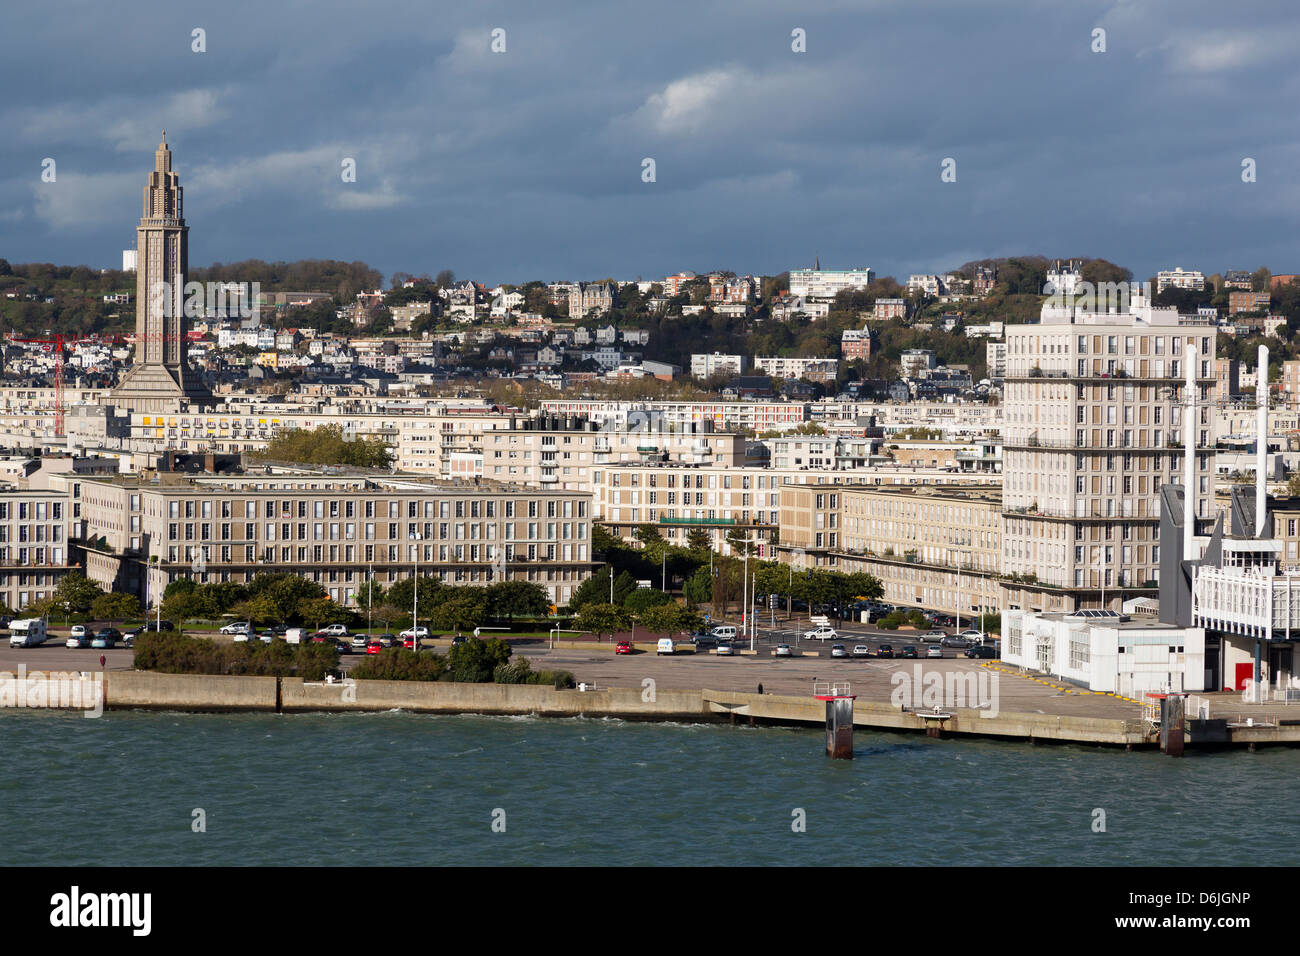 Downtown Le Havre, Normandy, France, Europe - Stock Image